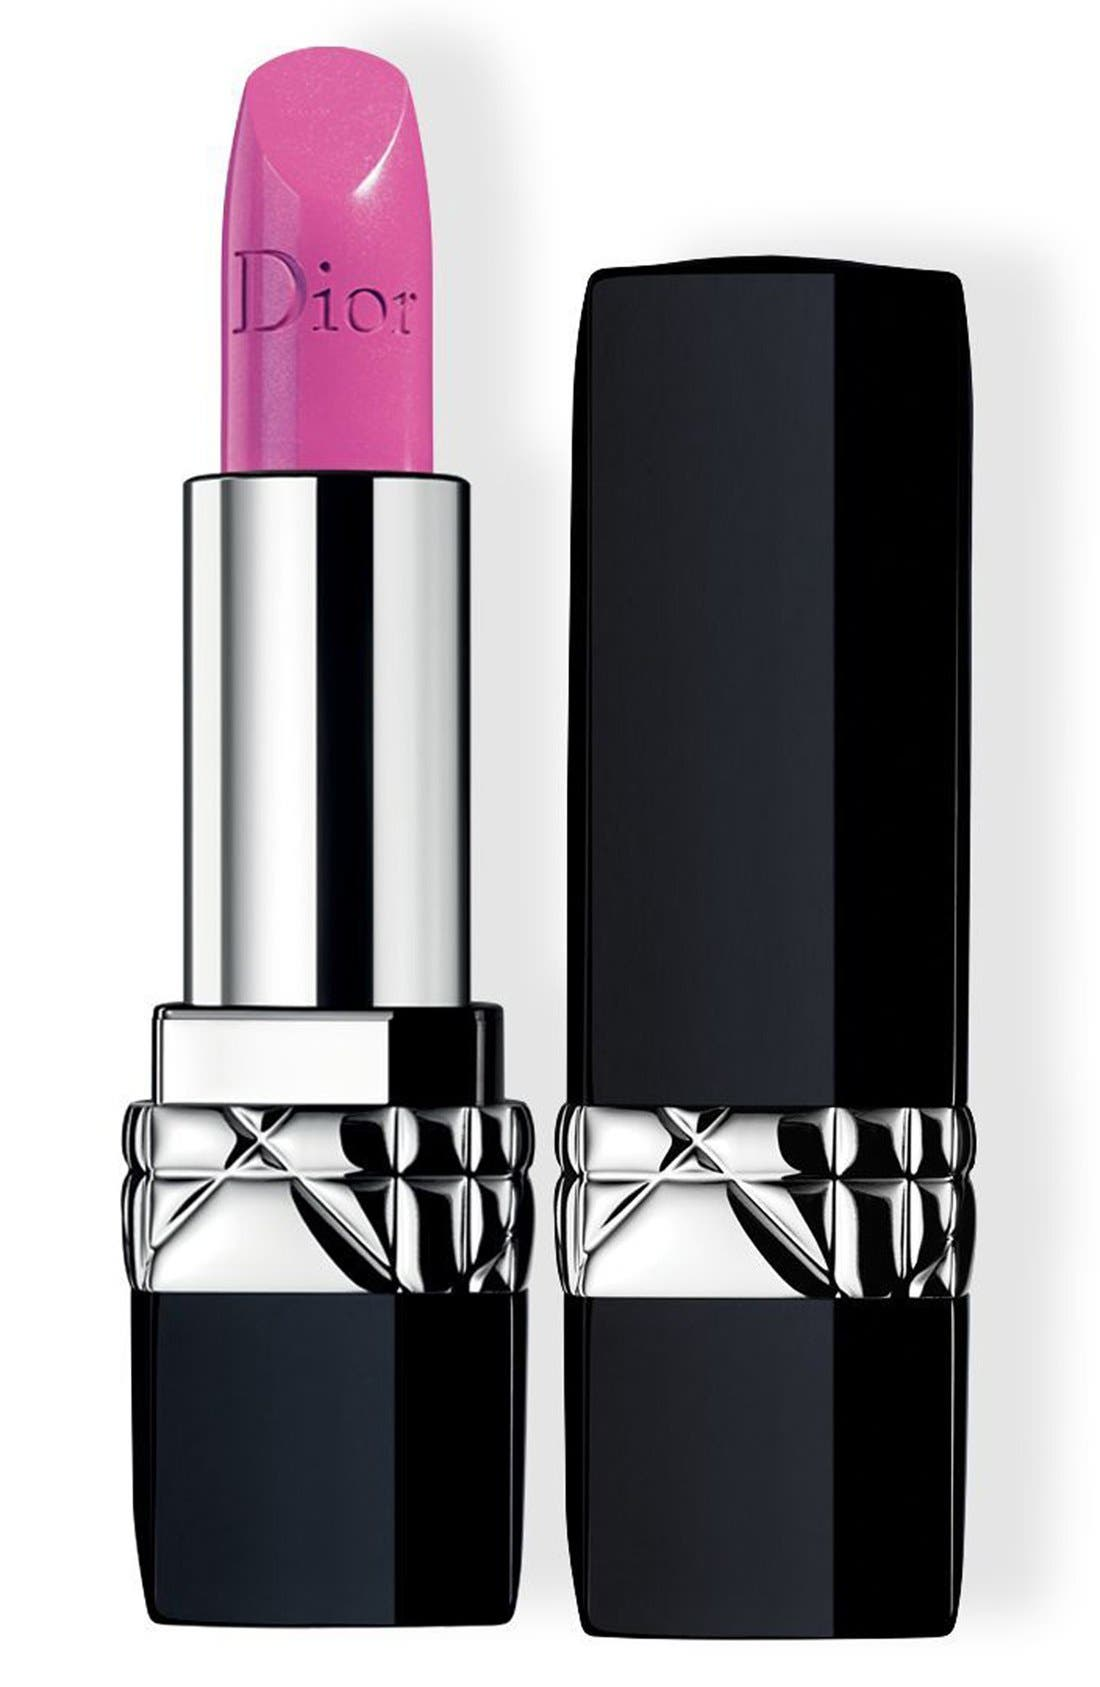 Dior Couture Color Rouge Dior Lipstick - 475 Rose Caprice